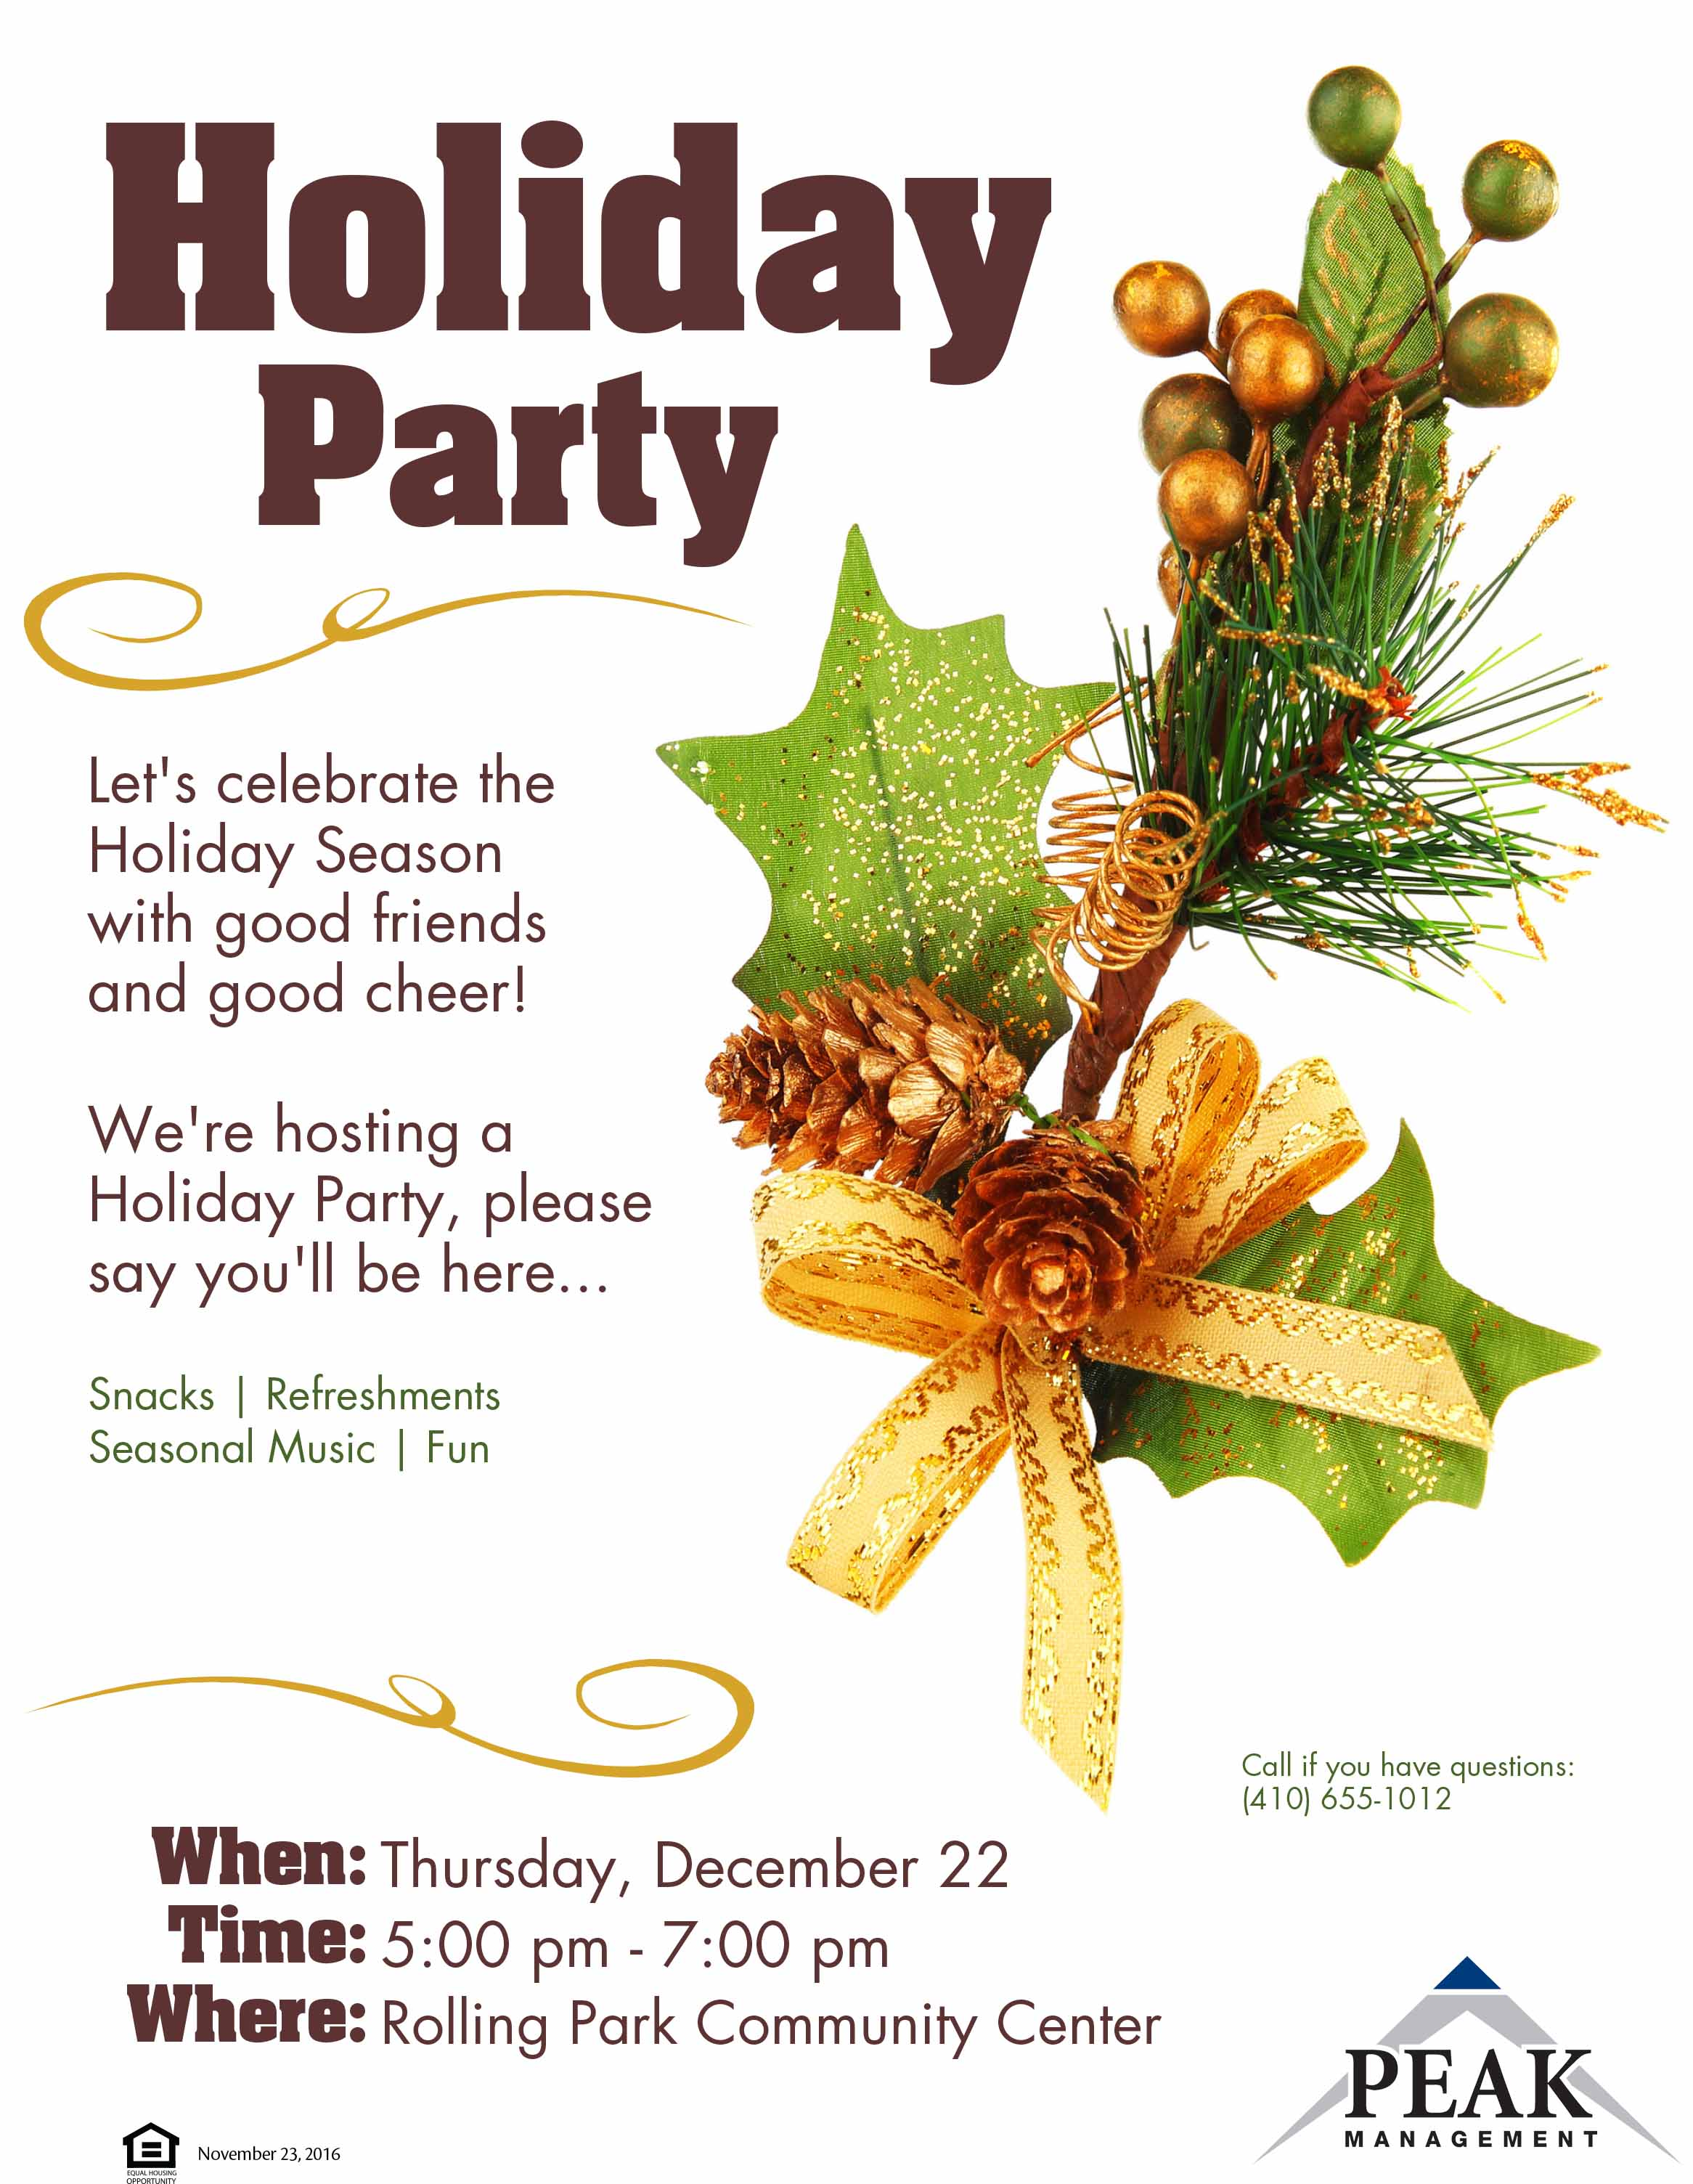 Rolling Park Apartments Holiday Party Invitation 2016